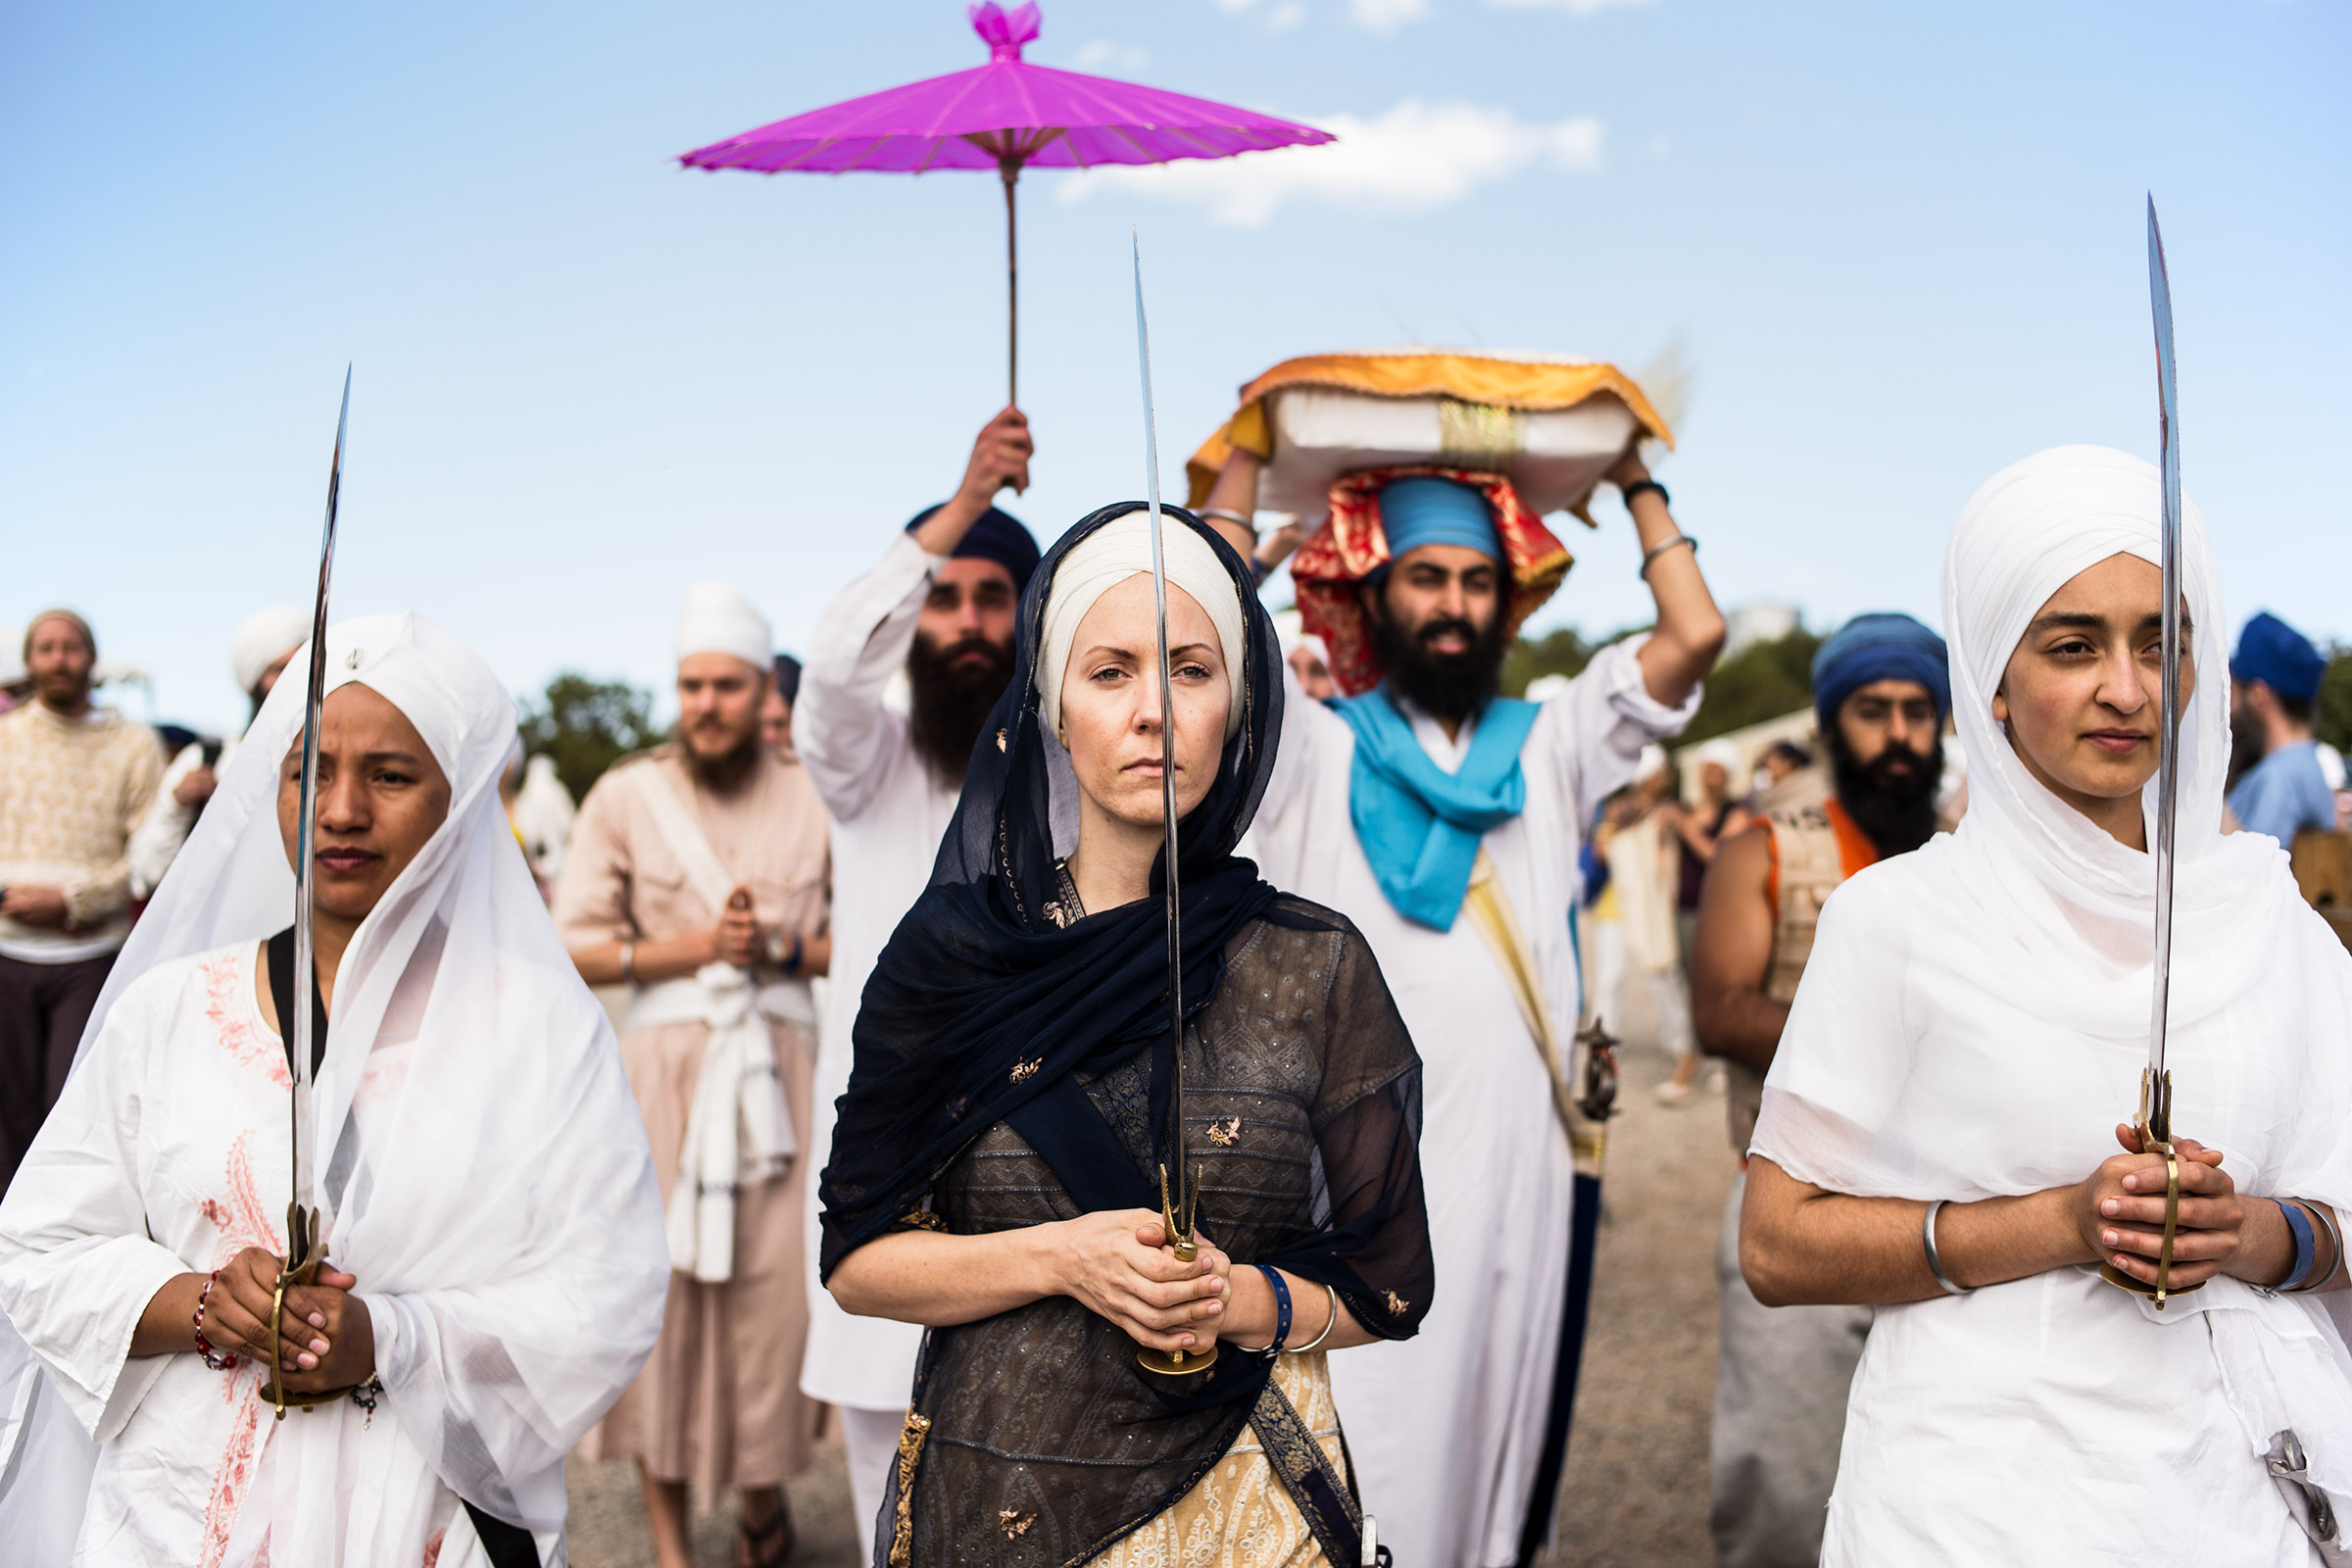 Nagar Kirtan, New Mexico, United States, 2014.